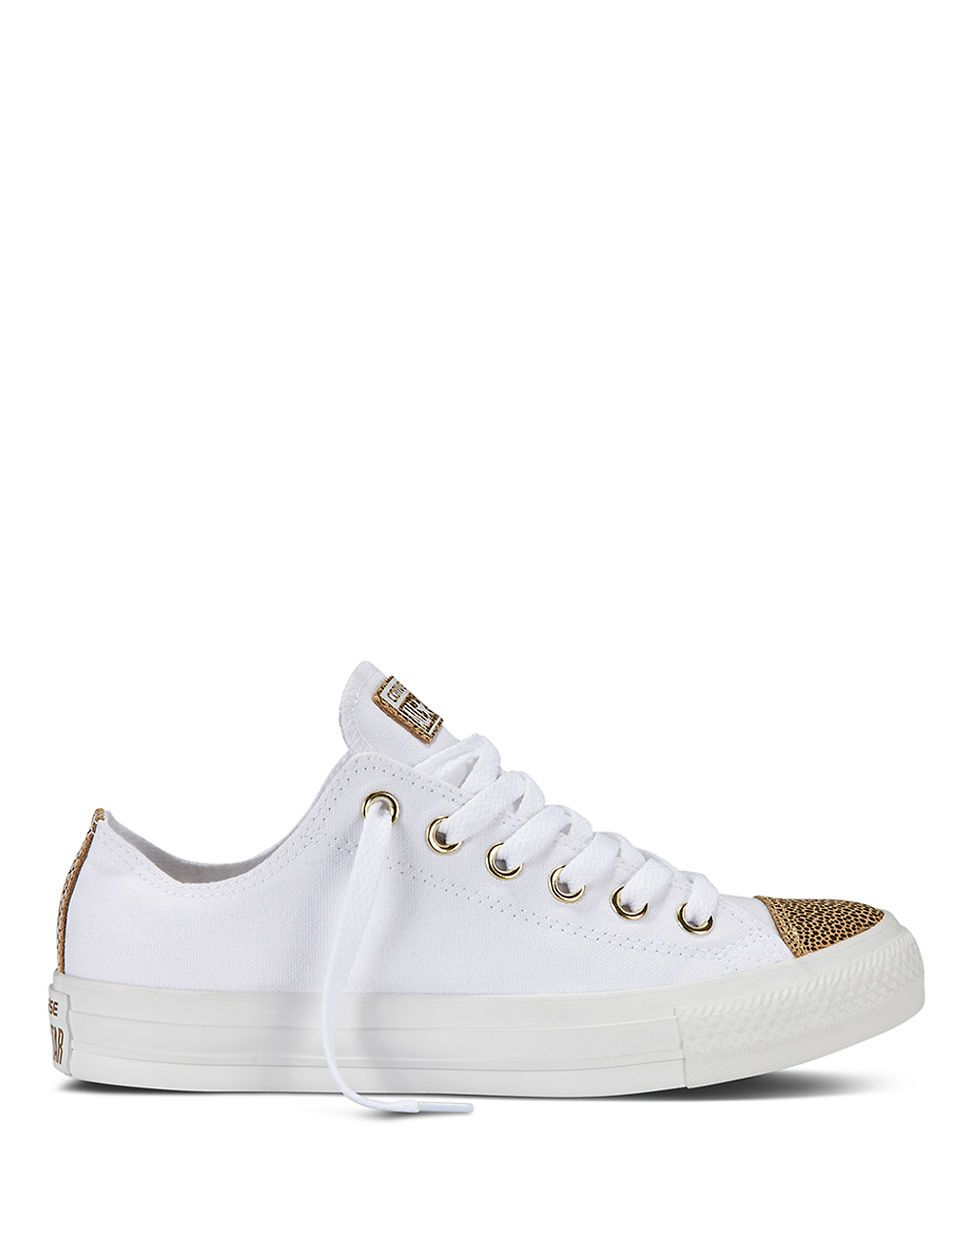 95125dcac1a4 Women s Chuck Taylor All Star Sparkle Toe Cap